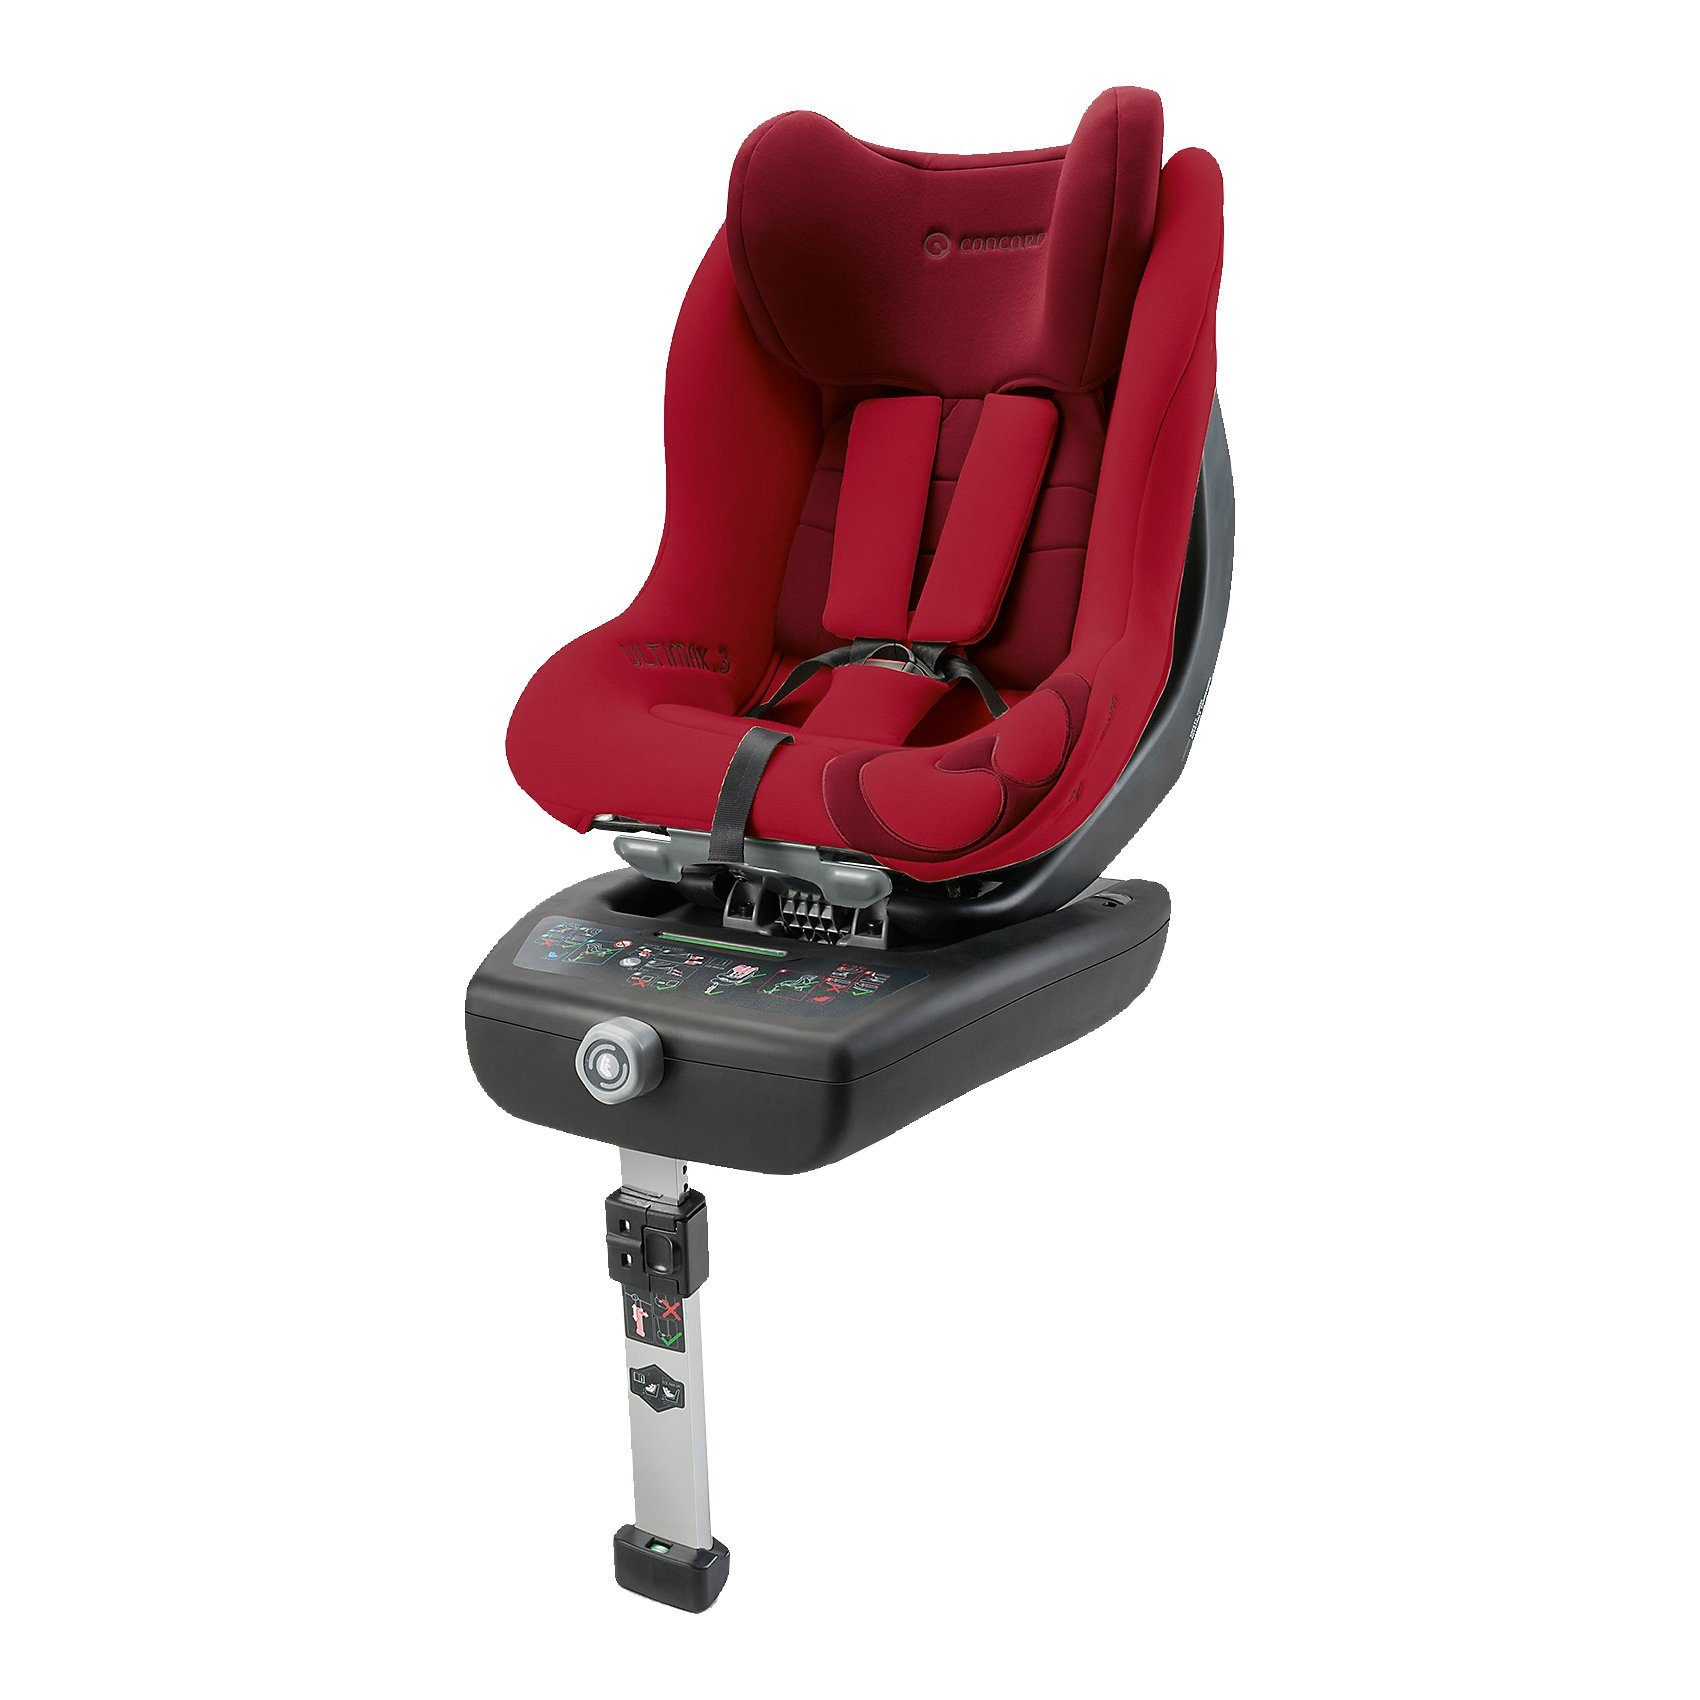 Concord Auto-Kindersitz Ultimax.3, Ruby Red, 2016